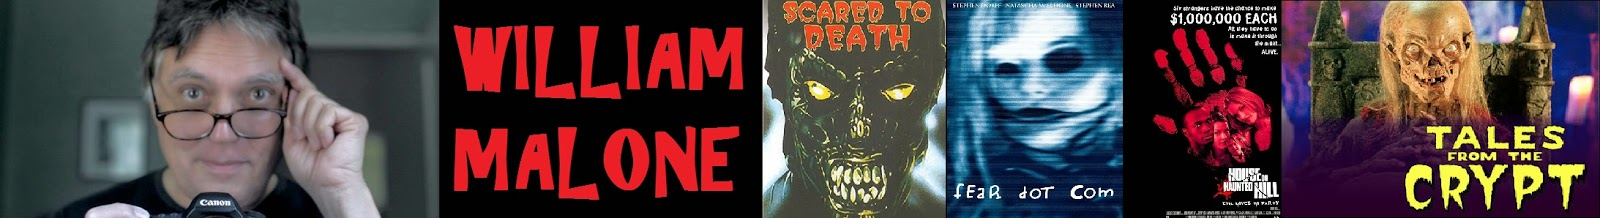 William Malone director, feart dot com, house on haunted hill remake